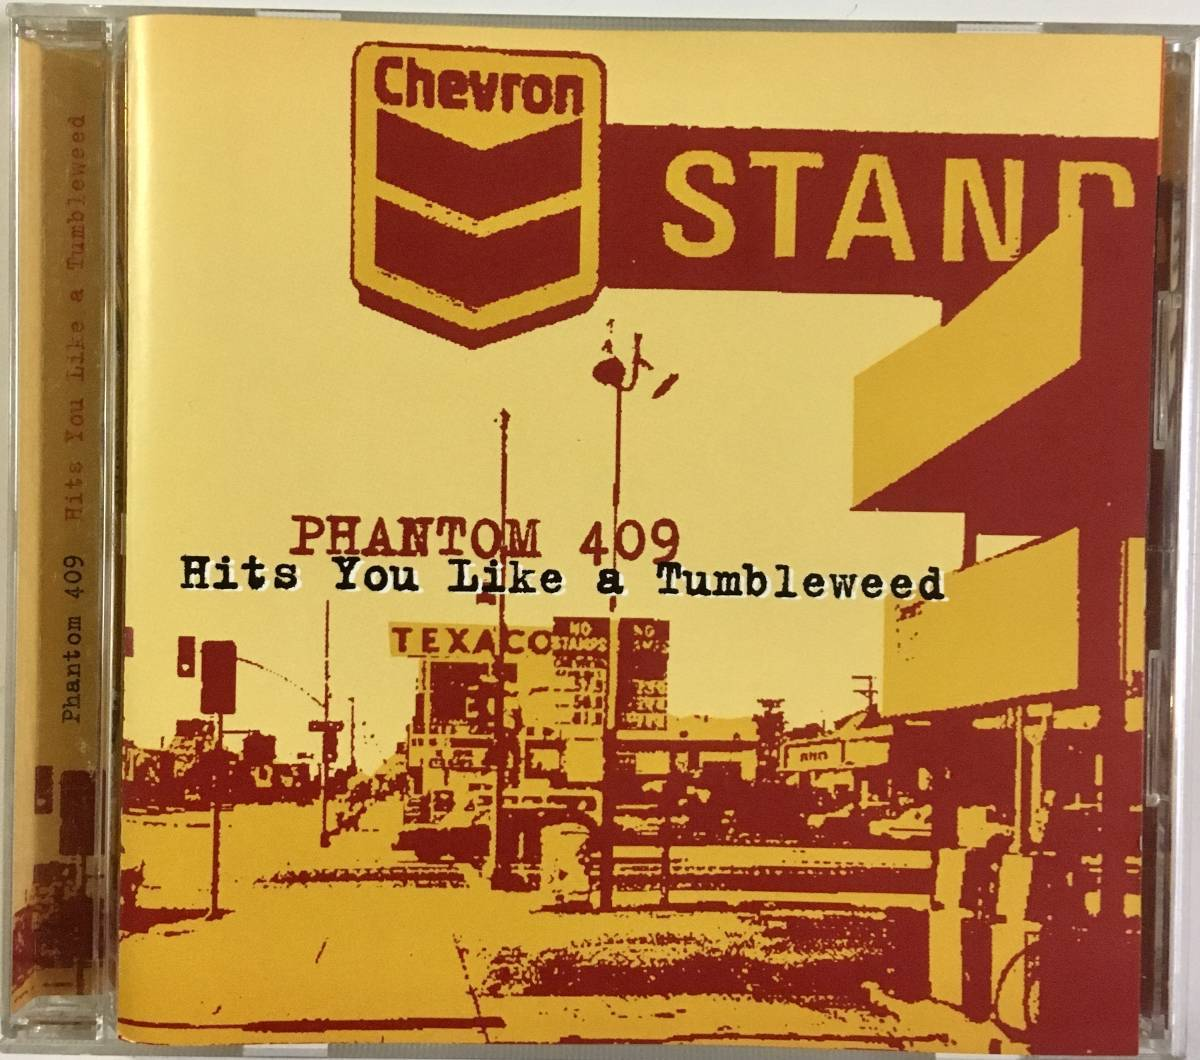 CD Phantom 409/Hits You Like A Tumbleweed ネオロカビリー サイコビリー runaway boys boppin'b roughnecks ace cats cruisers keytones_画像1